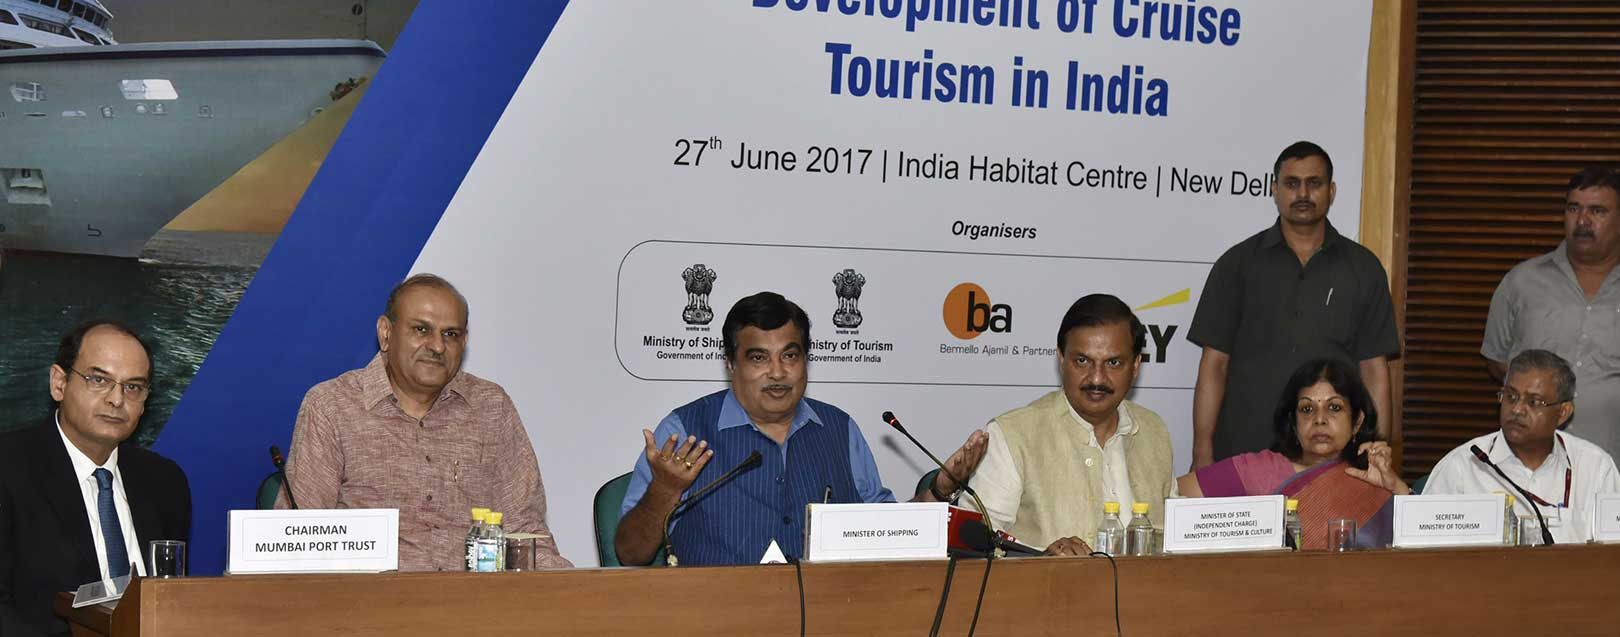 Cruise tourism can be a major growth driver for Indian economy, Gadkari